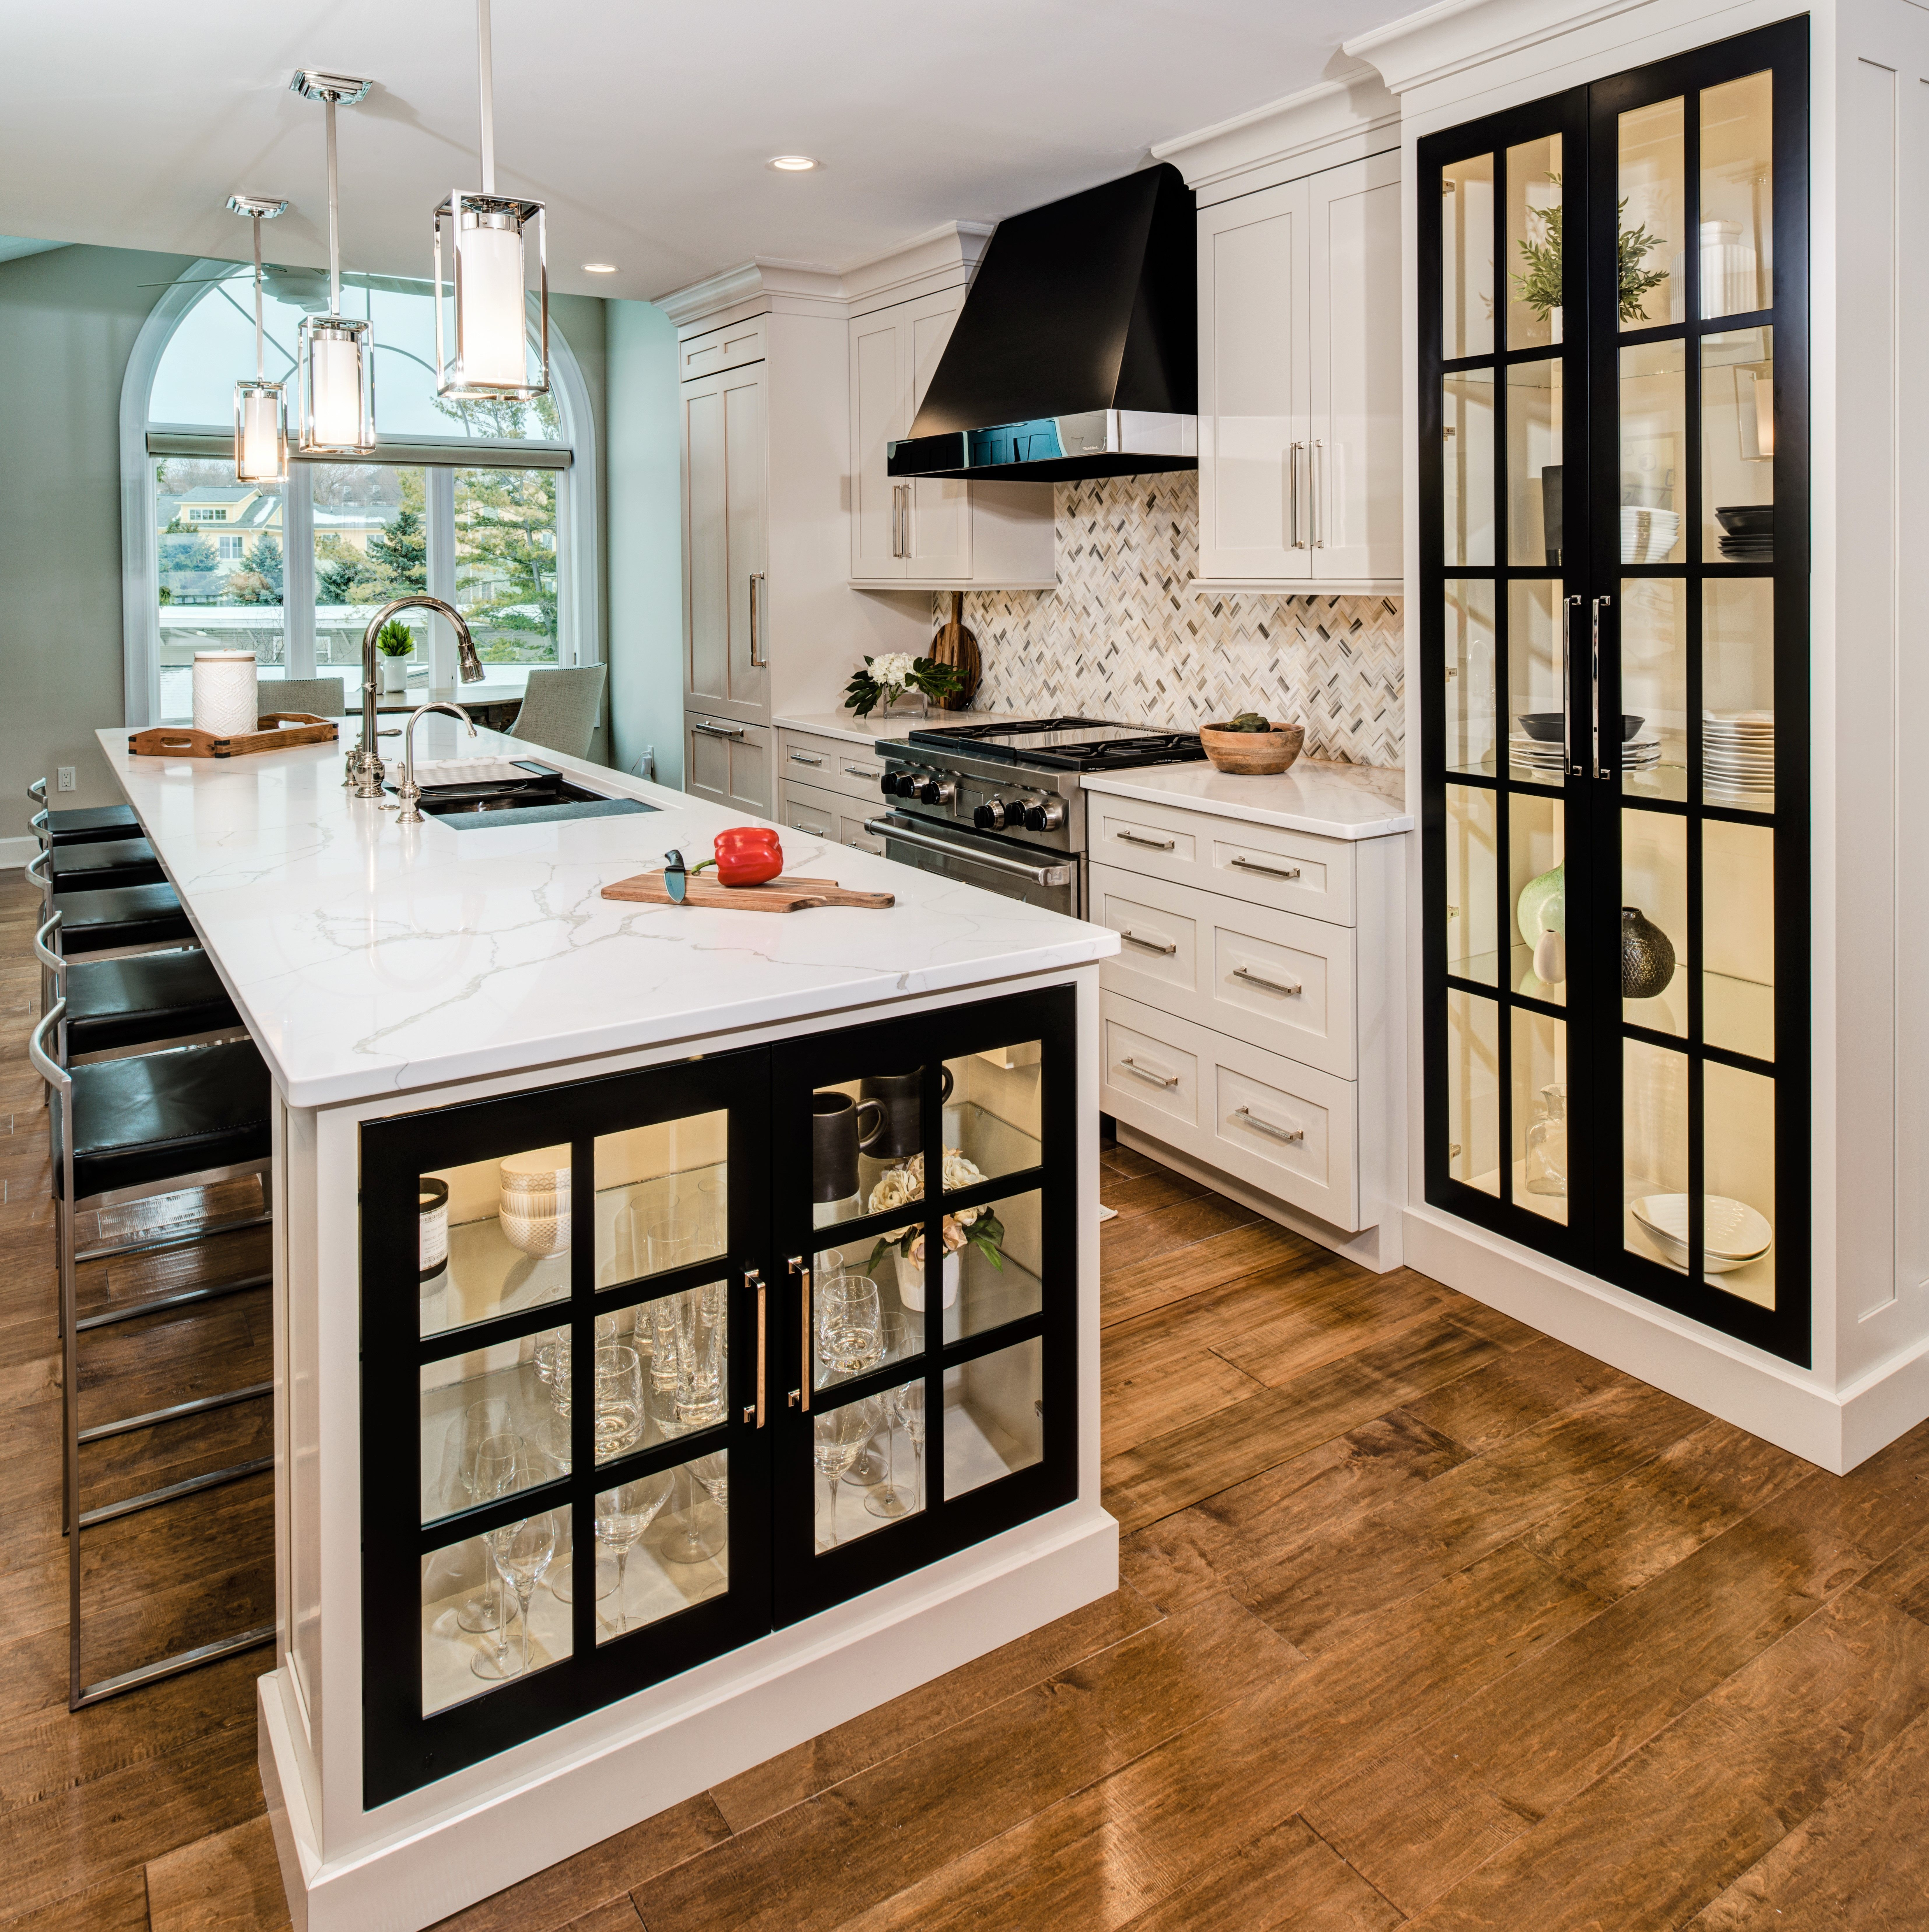 Warm and cozy, yet sleek and modern. This kitchen is a one ...